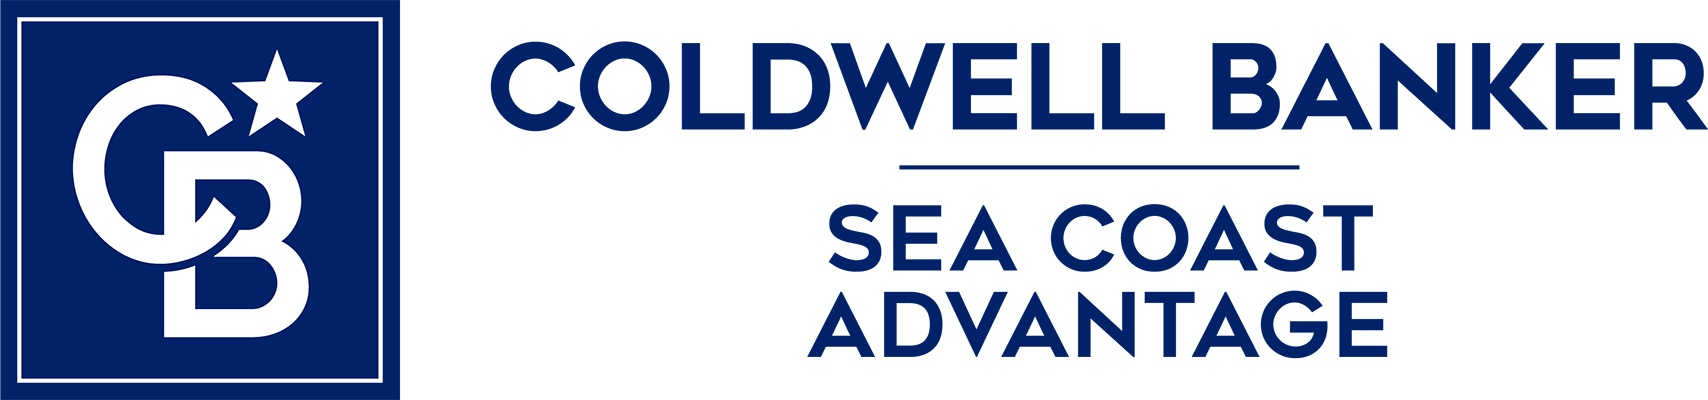 Samira Davis - Coldwell Banker Sea Coast Advantage Realty